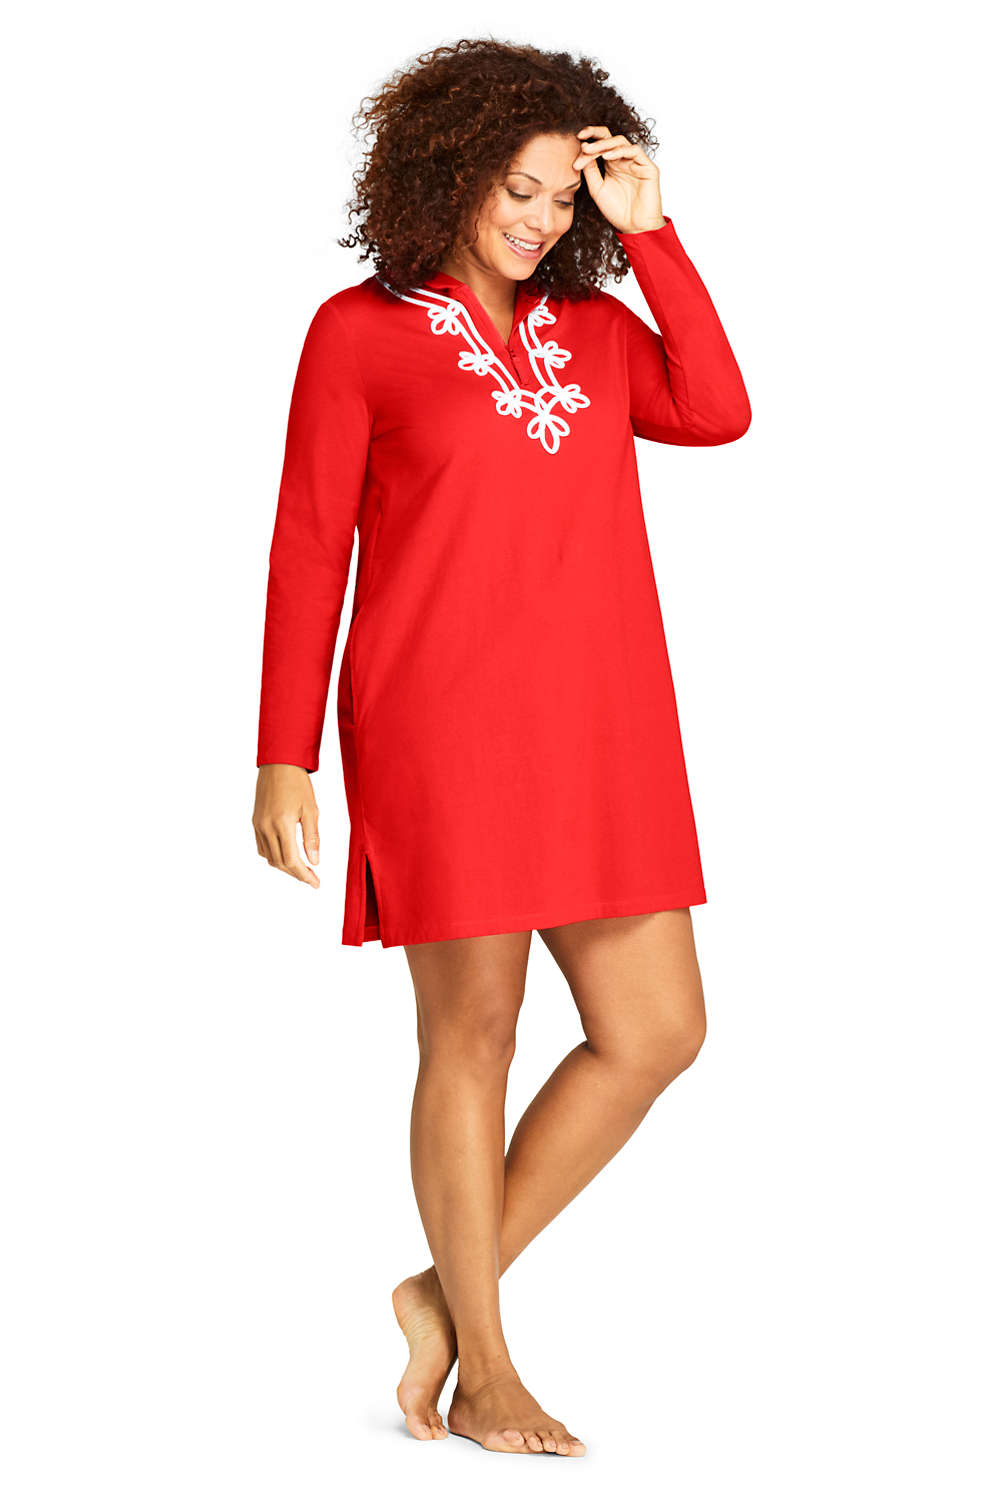 80e5c1ef063 Women's Plus Size Cotton Jersey Embelished Hooded Half Zip Swim Cover-up  from Lands' End